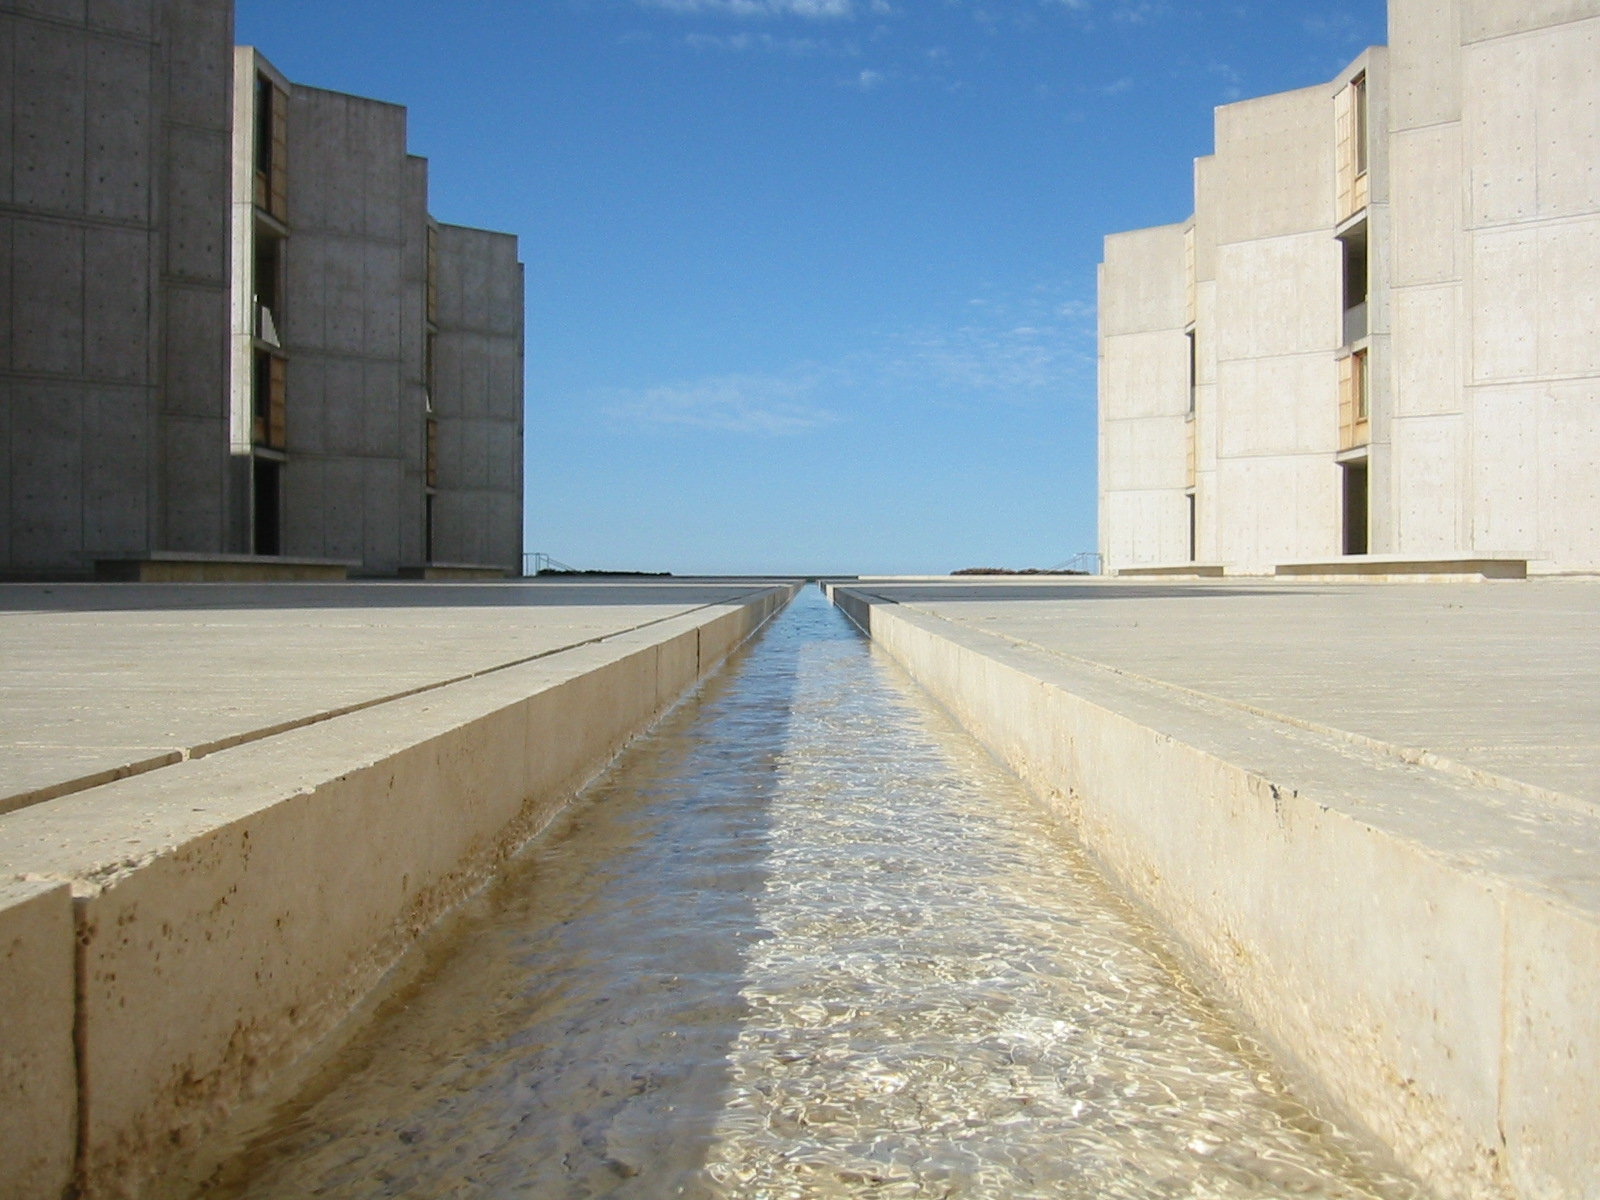 Courtyard rill fountain — Salk Institute, La Jolla, California, 2004. (Photo by  Jim Harper )